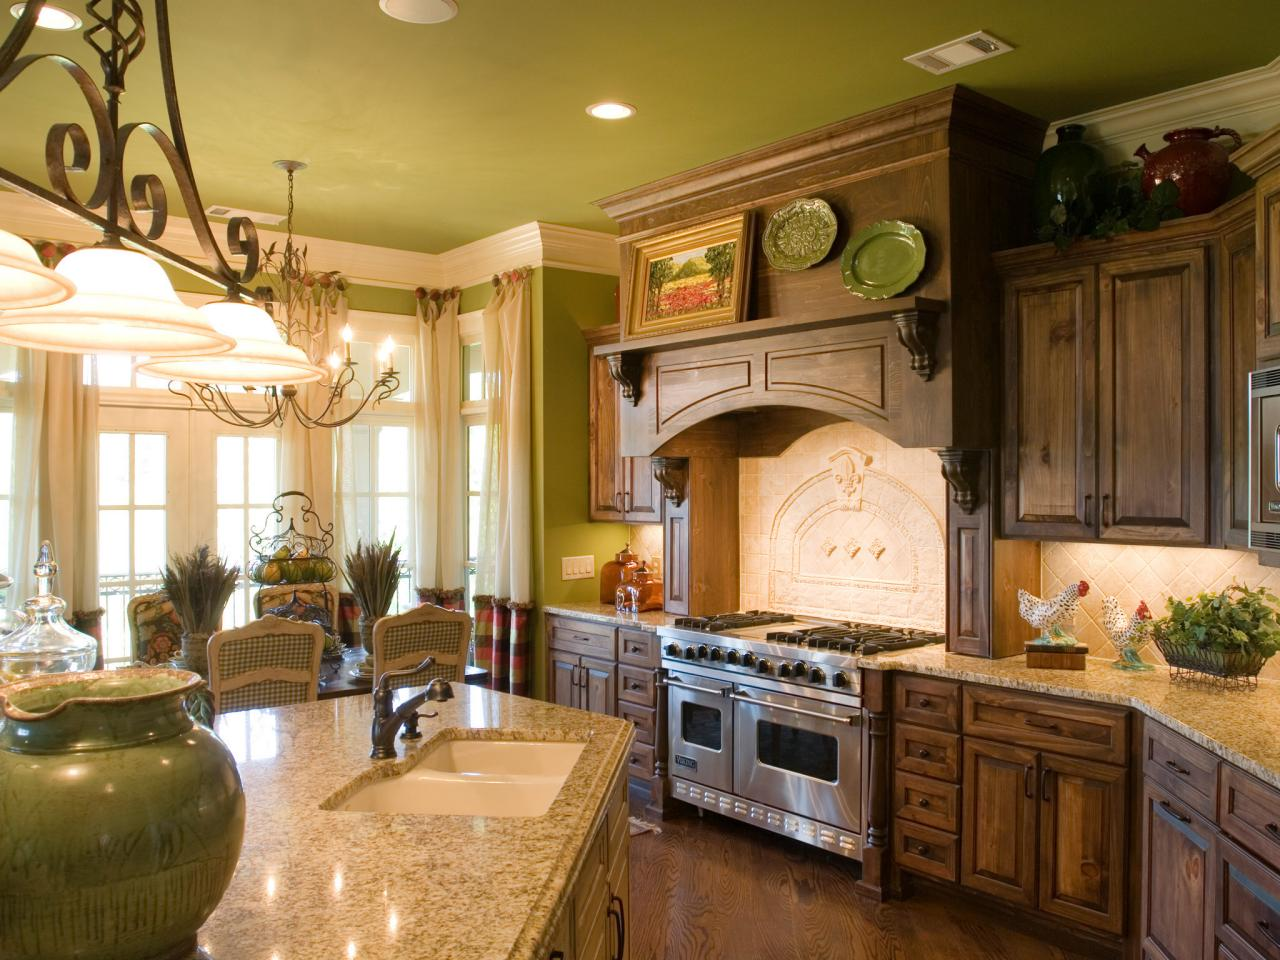 French country kitchen cabinets pictures ideas from French country kitchen decor